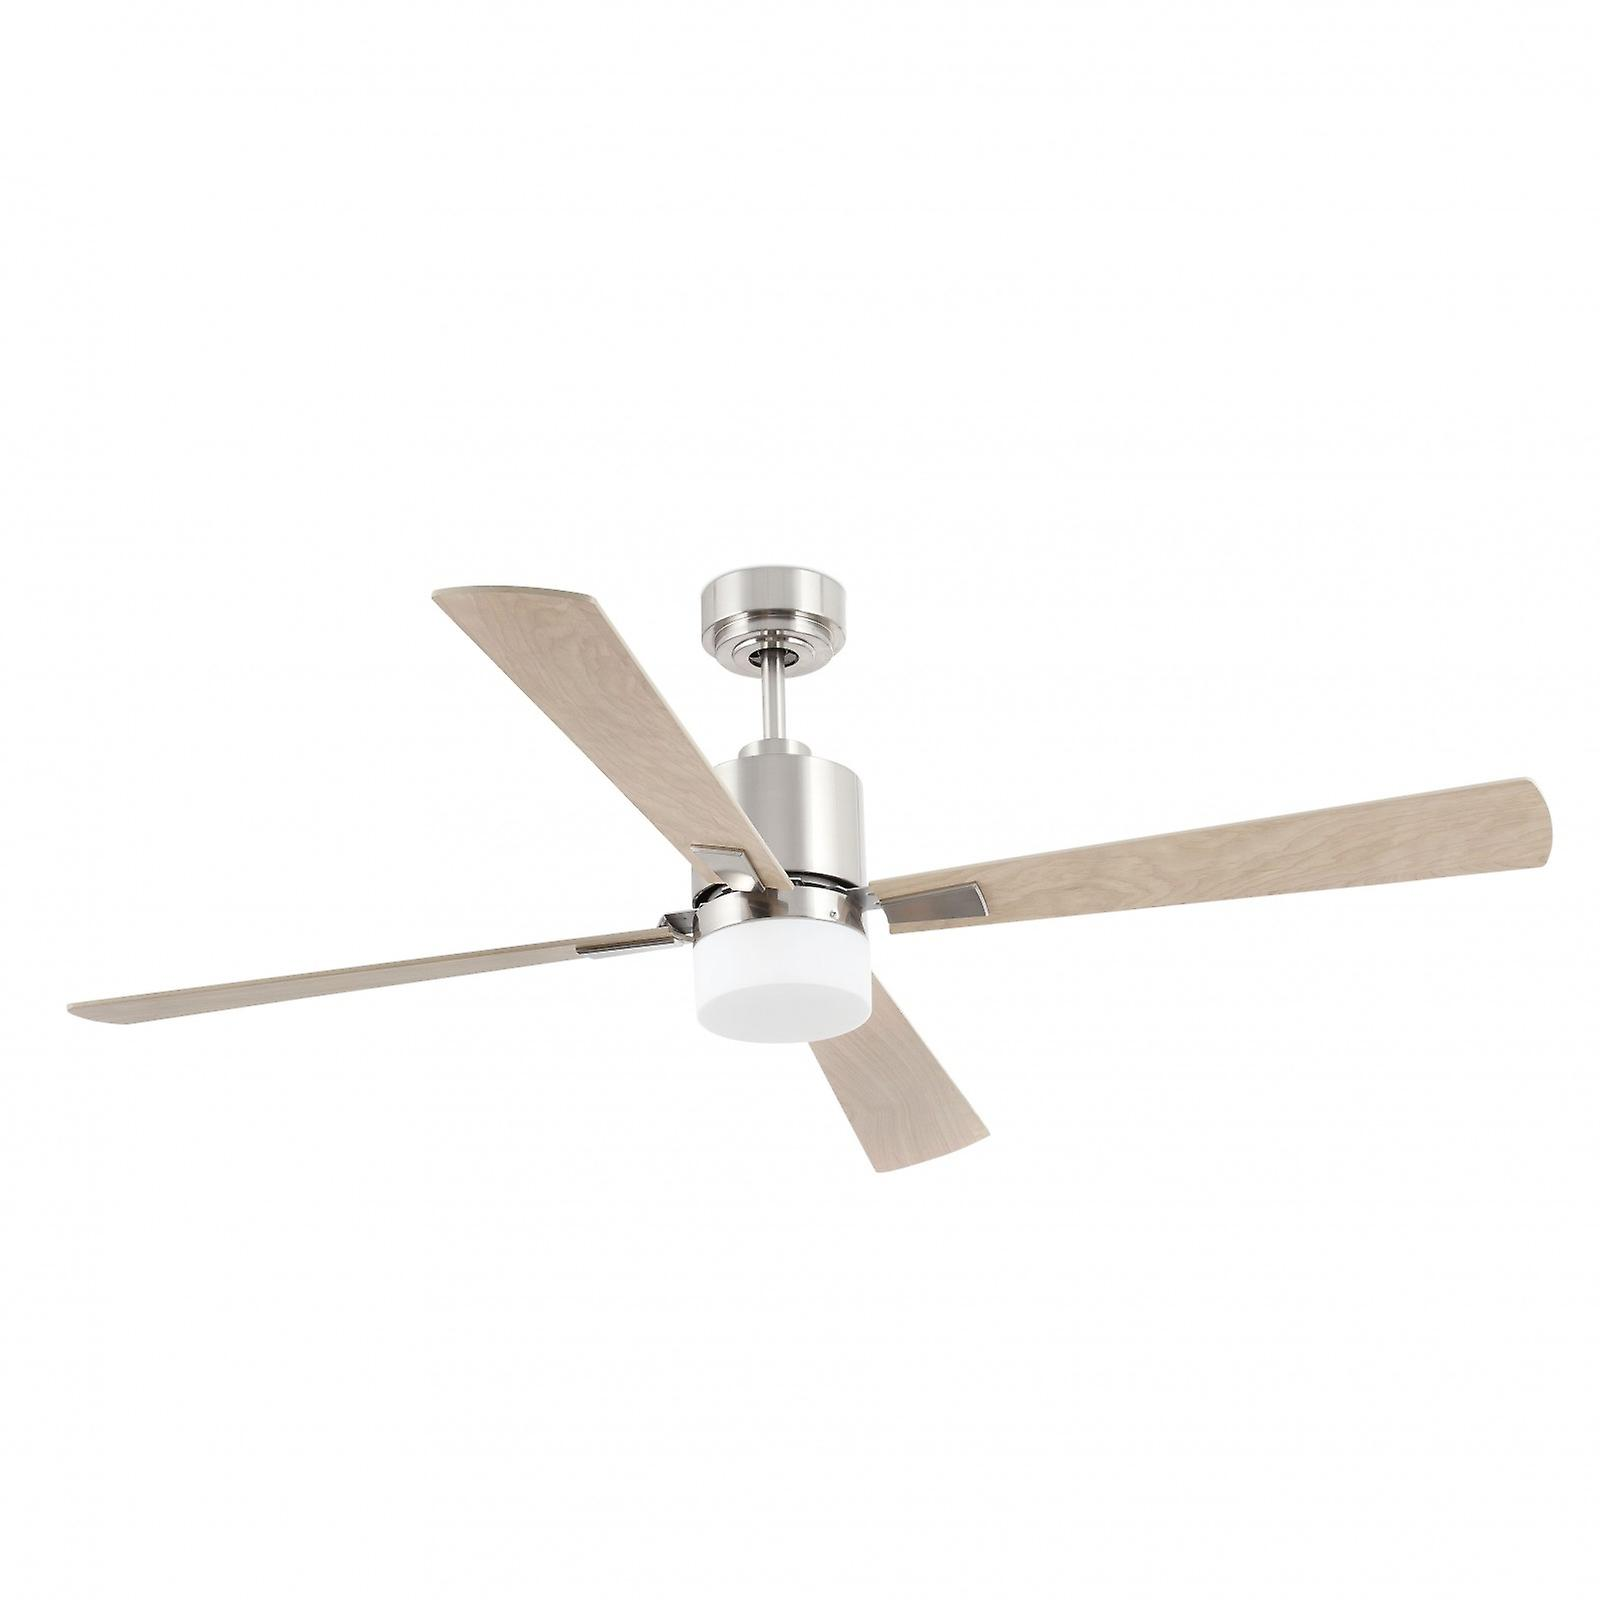 Energy-saving ceiling fan Palk with light and remote